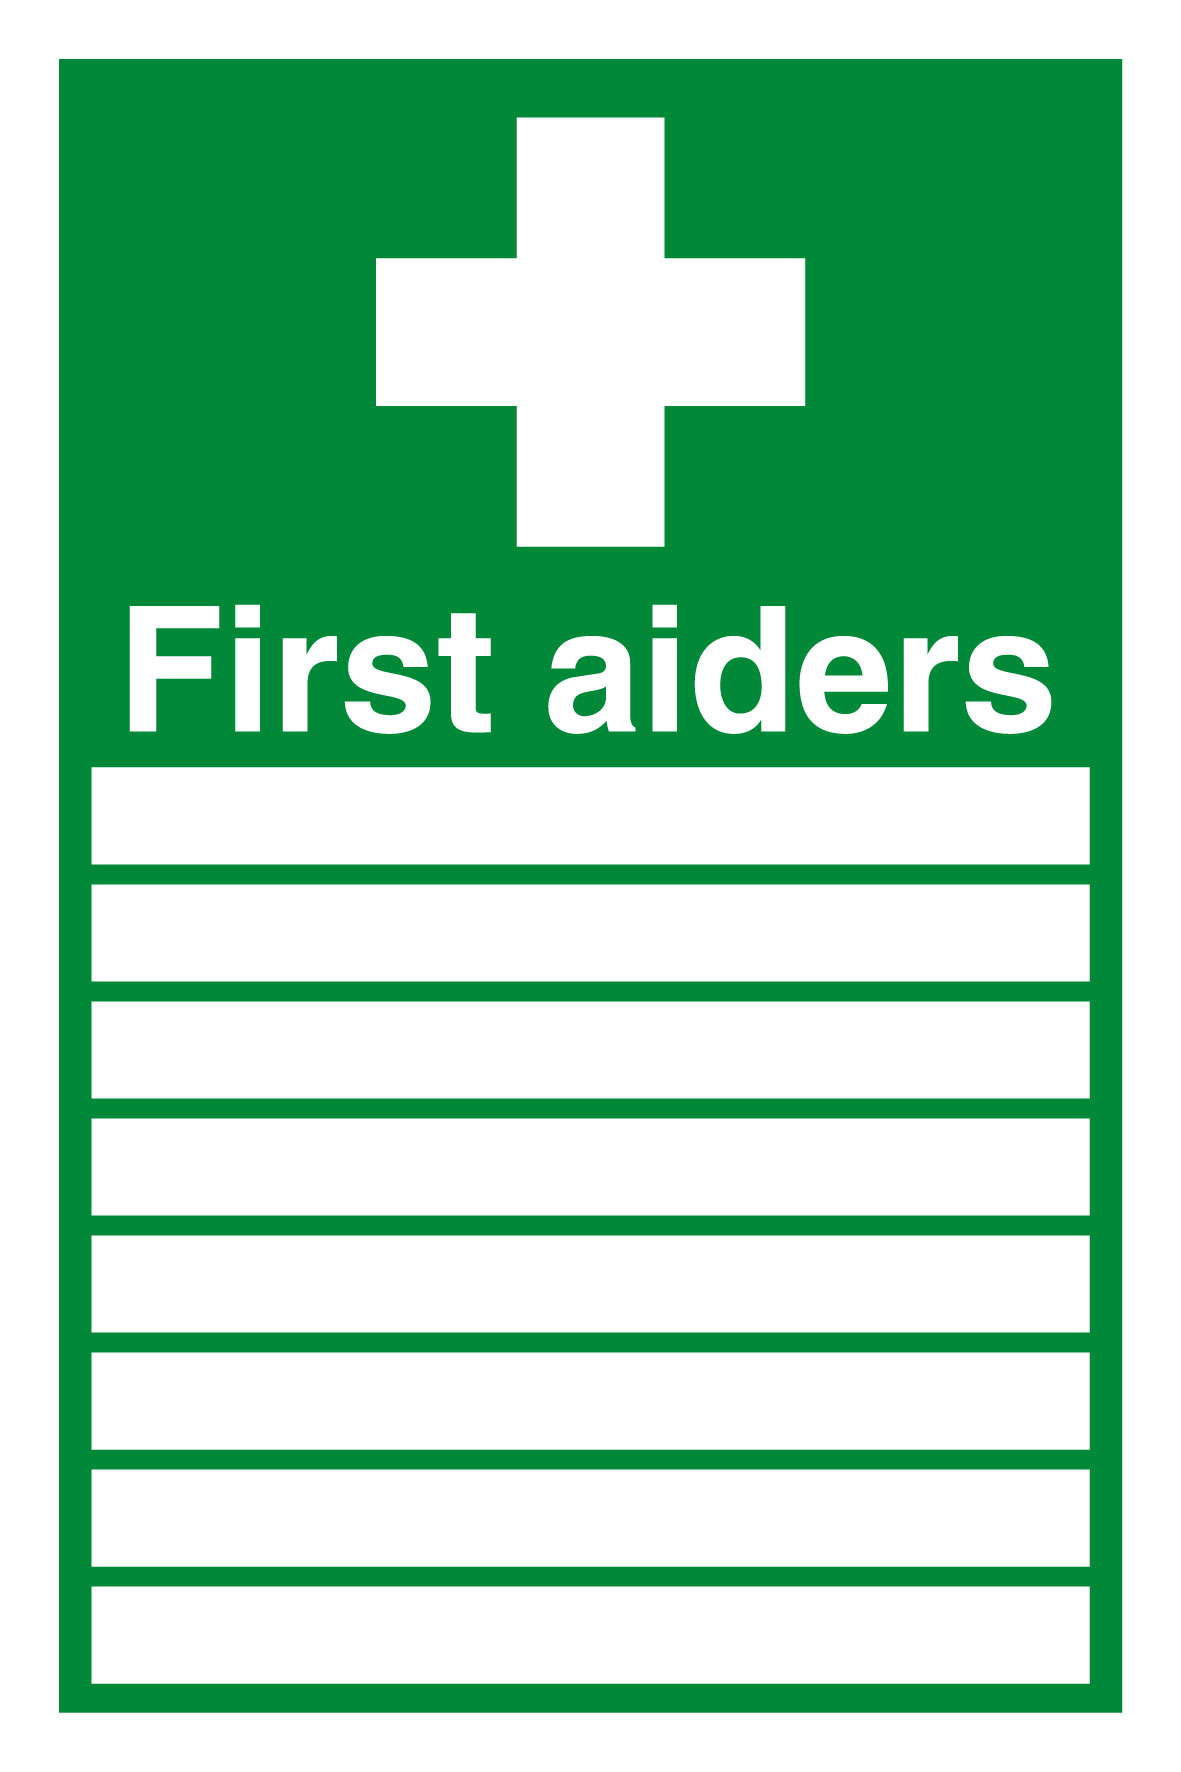 300 x 200 First Aiders 1.2mm rigid polypropylene sign